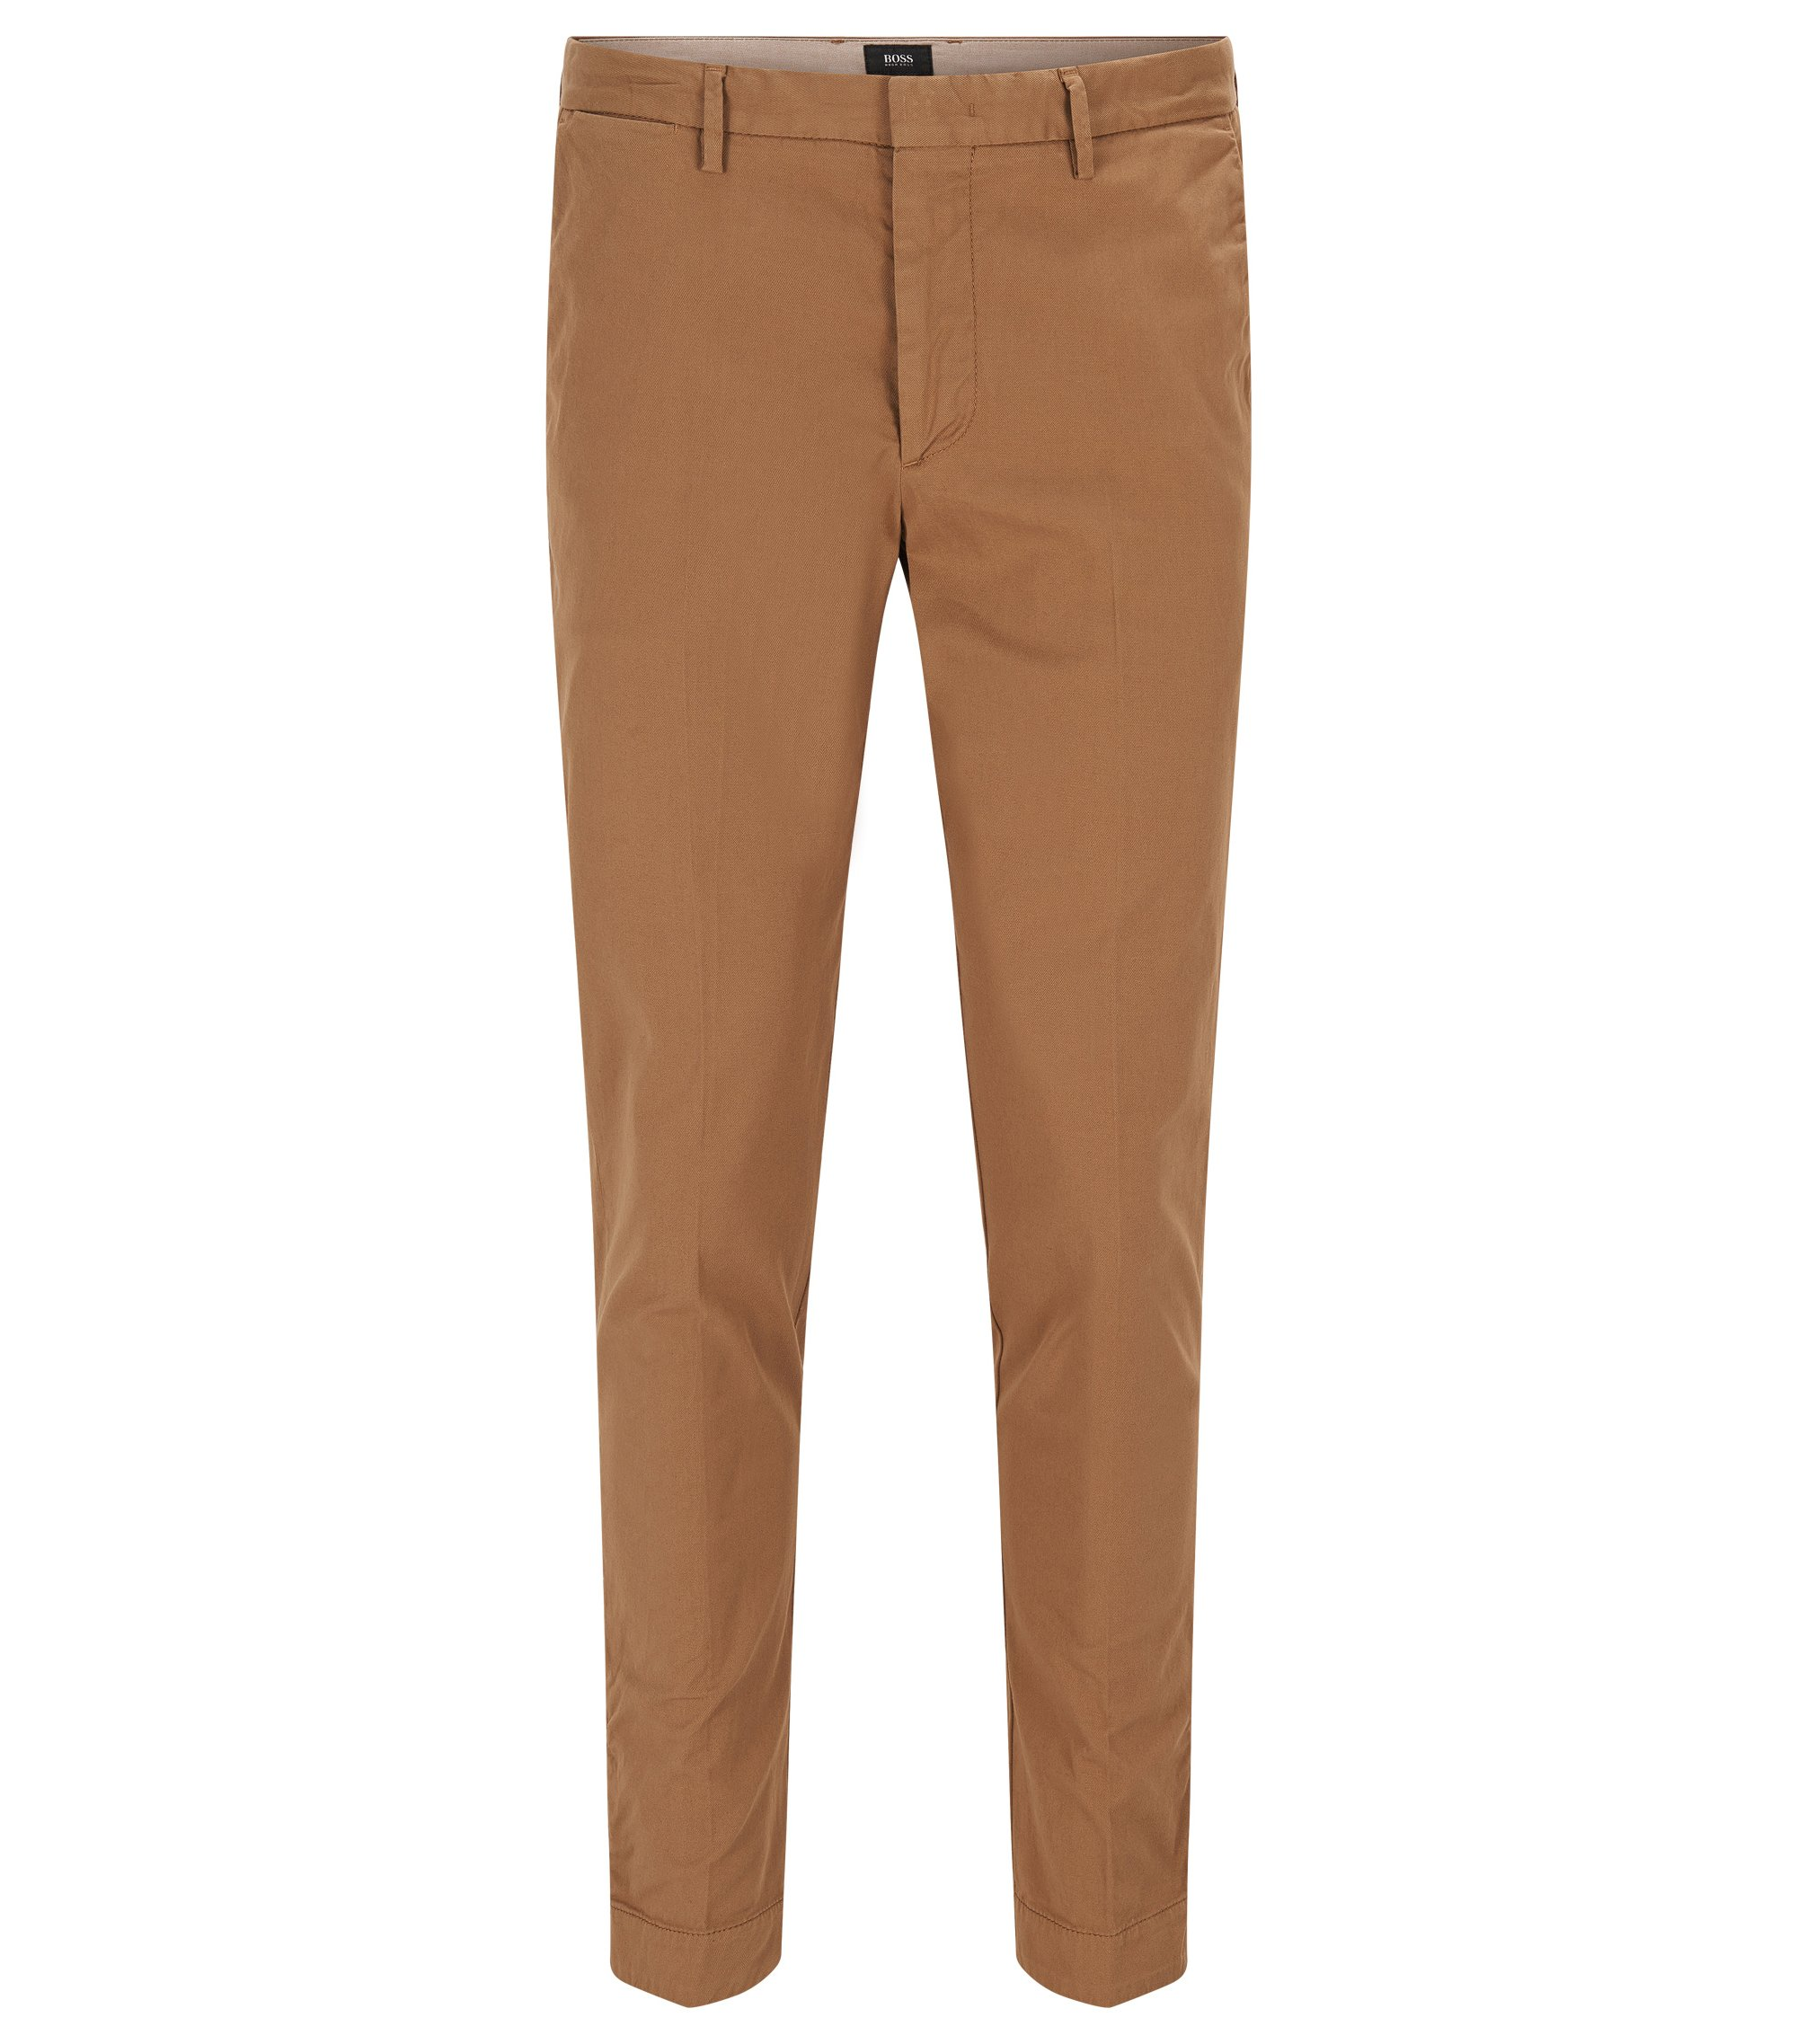 Gabardine Stretch Cotton Chino Pants, Slim Fit | Kaito Pat D, Beige